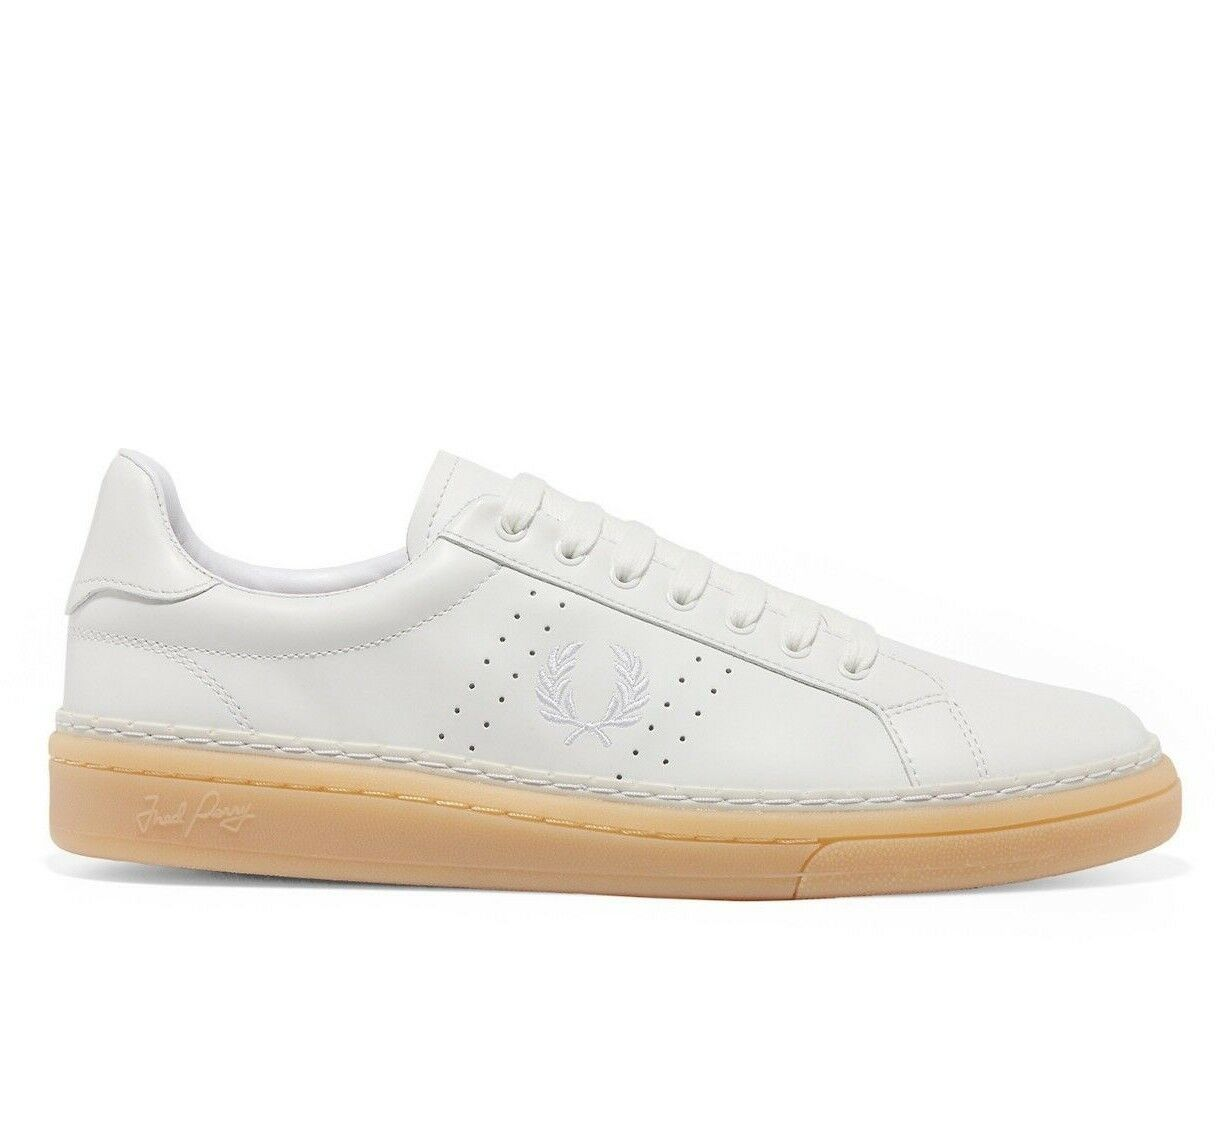 Frot Perry B721 High Shine Leather Men's Trainers schuhe B2085-100 - Weiß